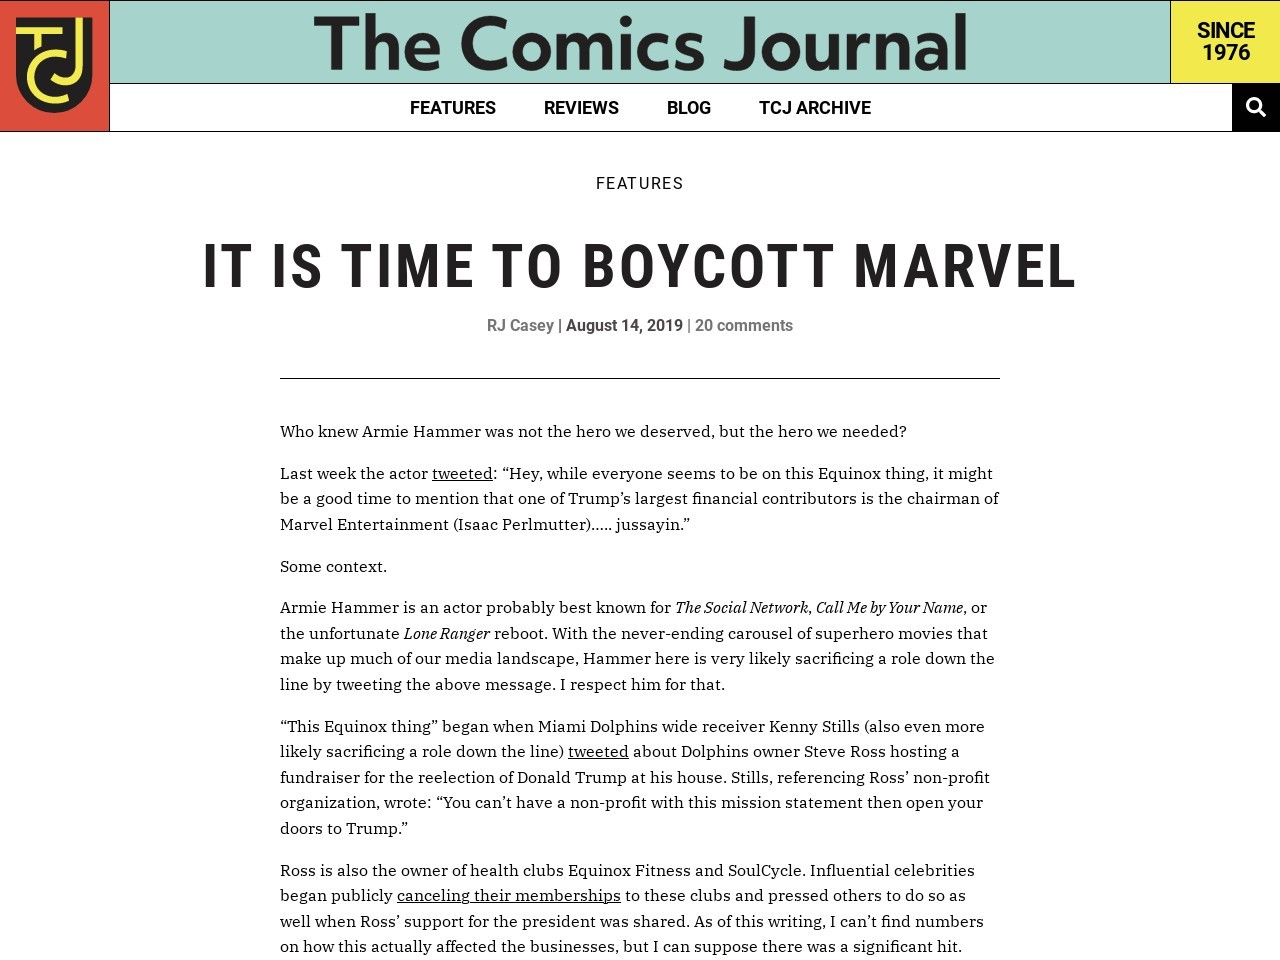 It Is Time To Boycott Marvel